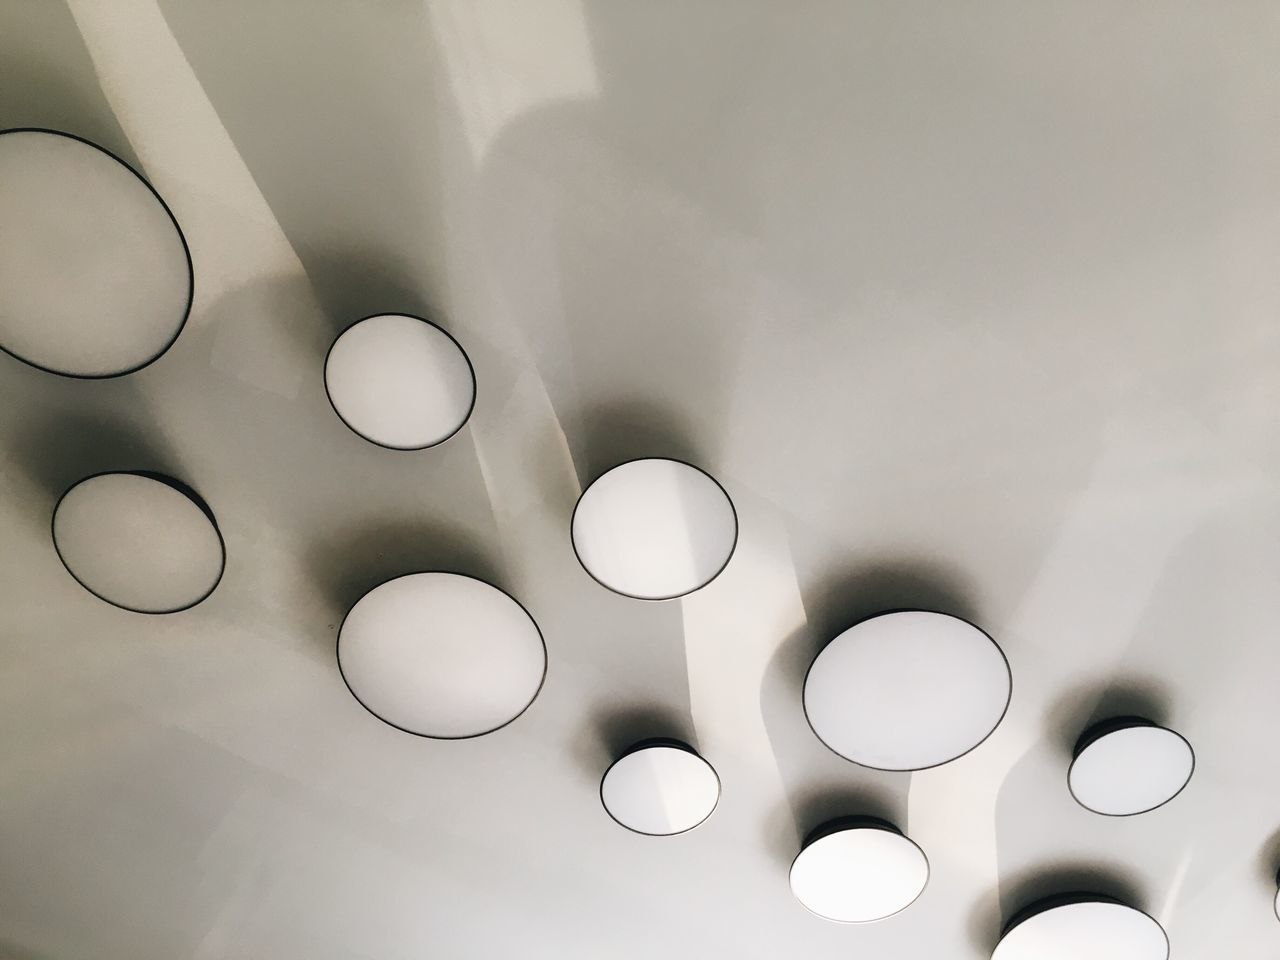 indoors, no people, circle, geometric shape, ceiling, illuminated, shape, white color, lighting equipment, pattern, backgrounds, close-up, design, full frame, technology, electricity, glowing, architecture, light, group of objects, directly below, electric lamp